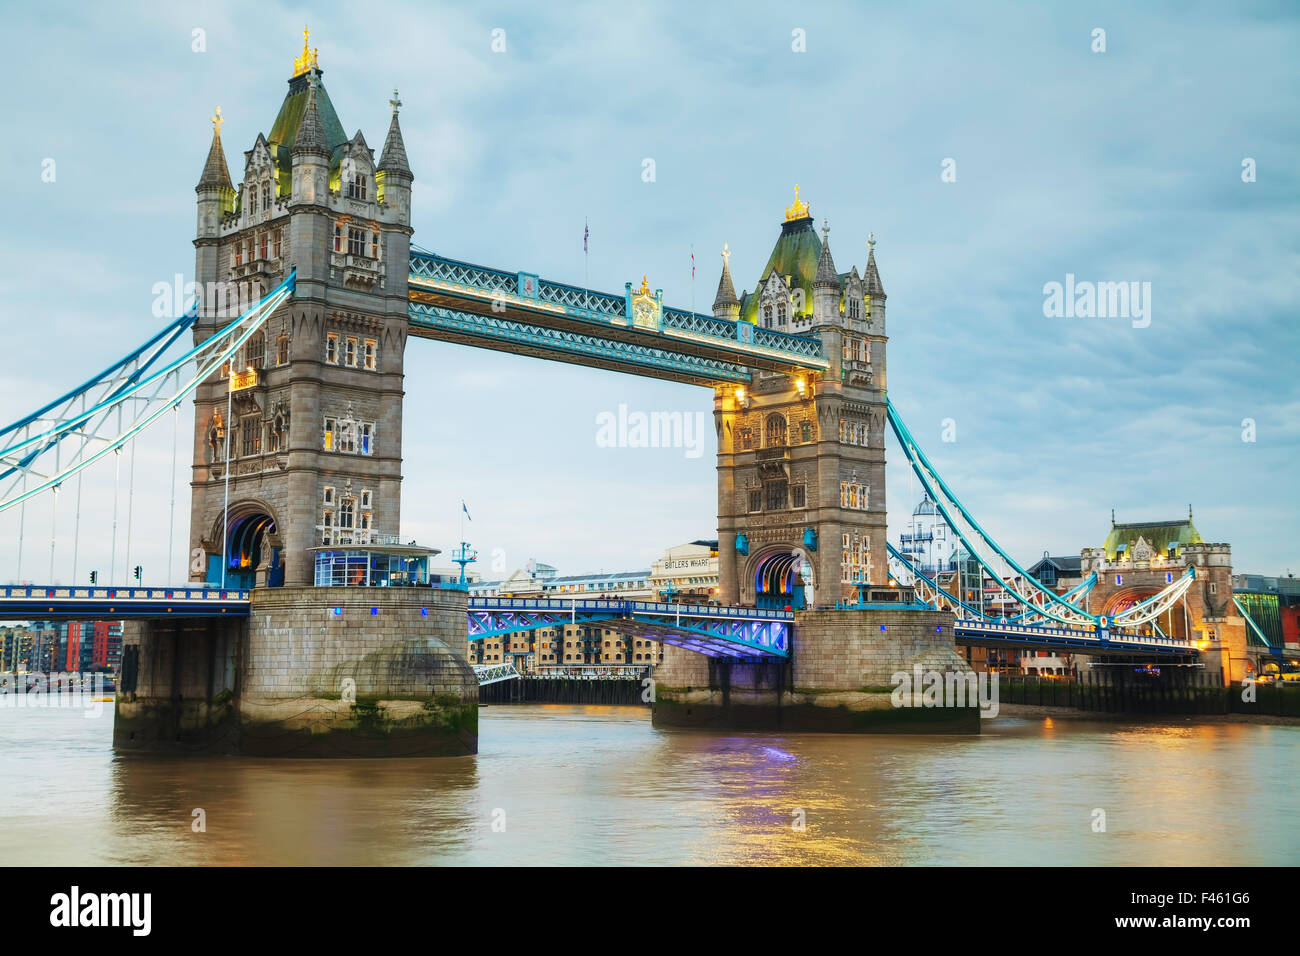 Tower Bridge à Londres, Grande-Bretagne Photo Stock